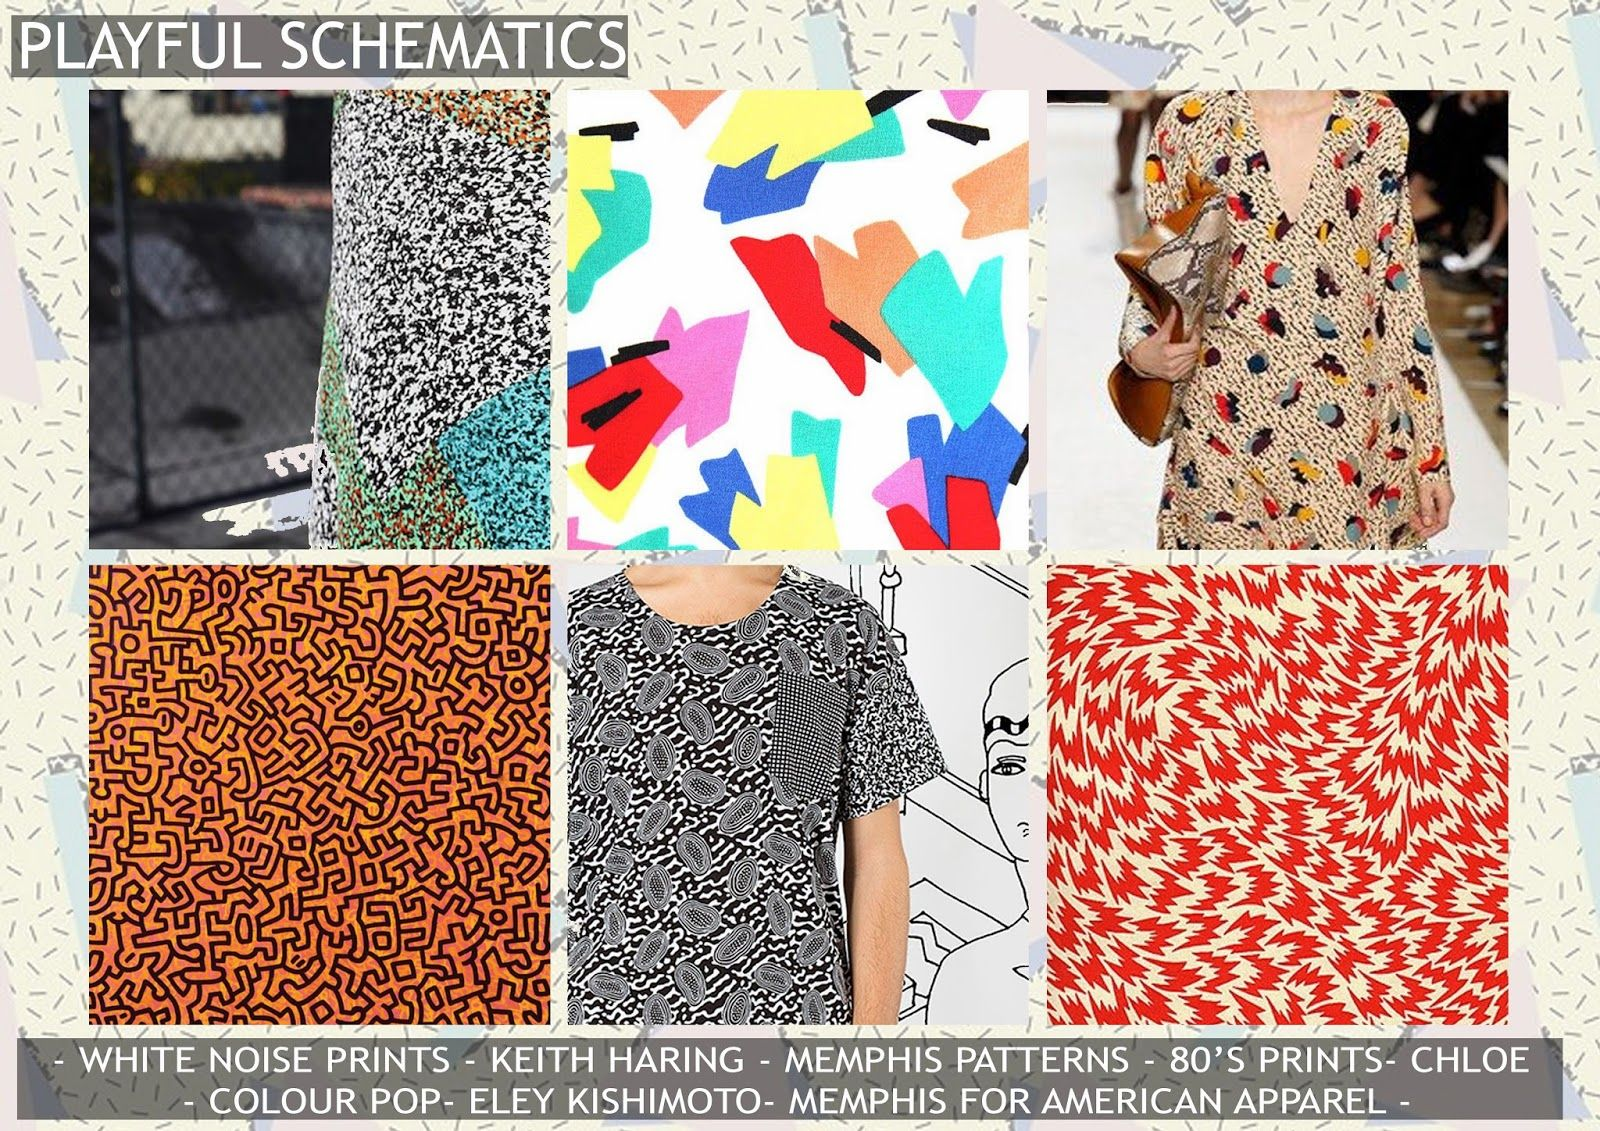 playful schematics, premiere vision, print trends, fashion trends, memphis pattern, keith haring, eley kishimoto, chloe